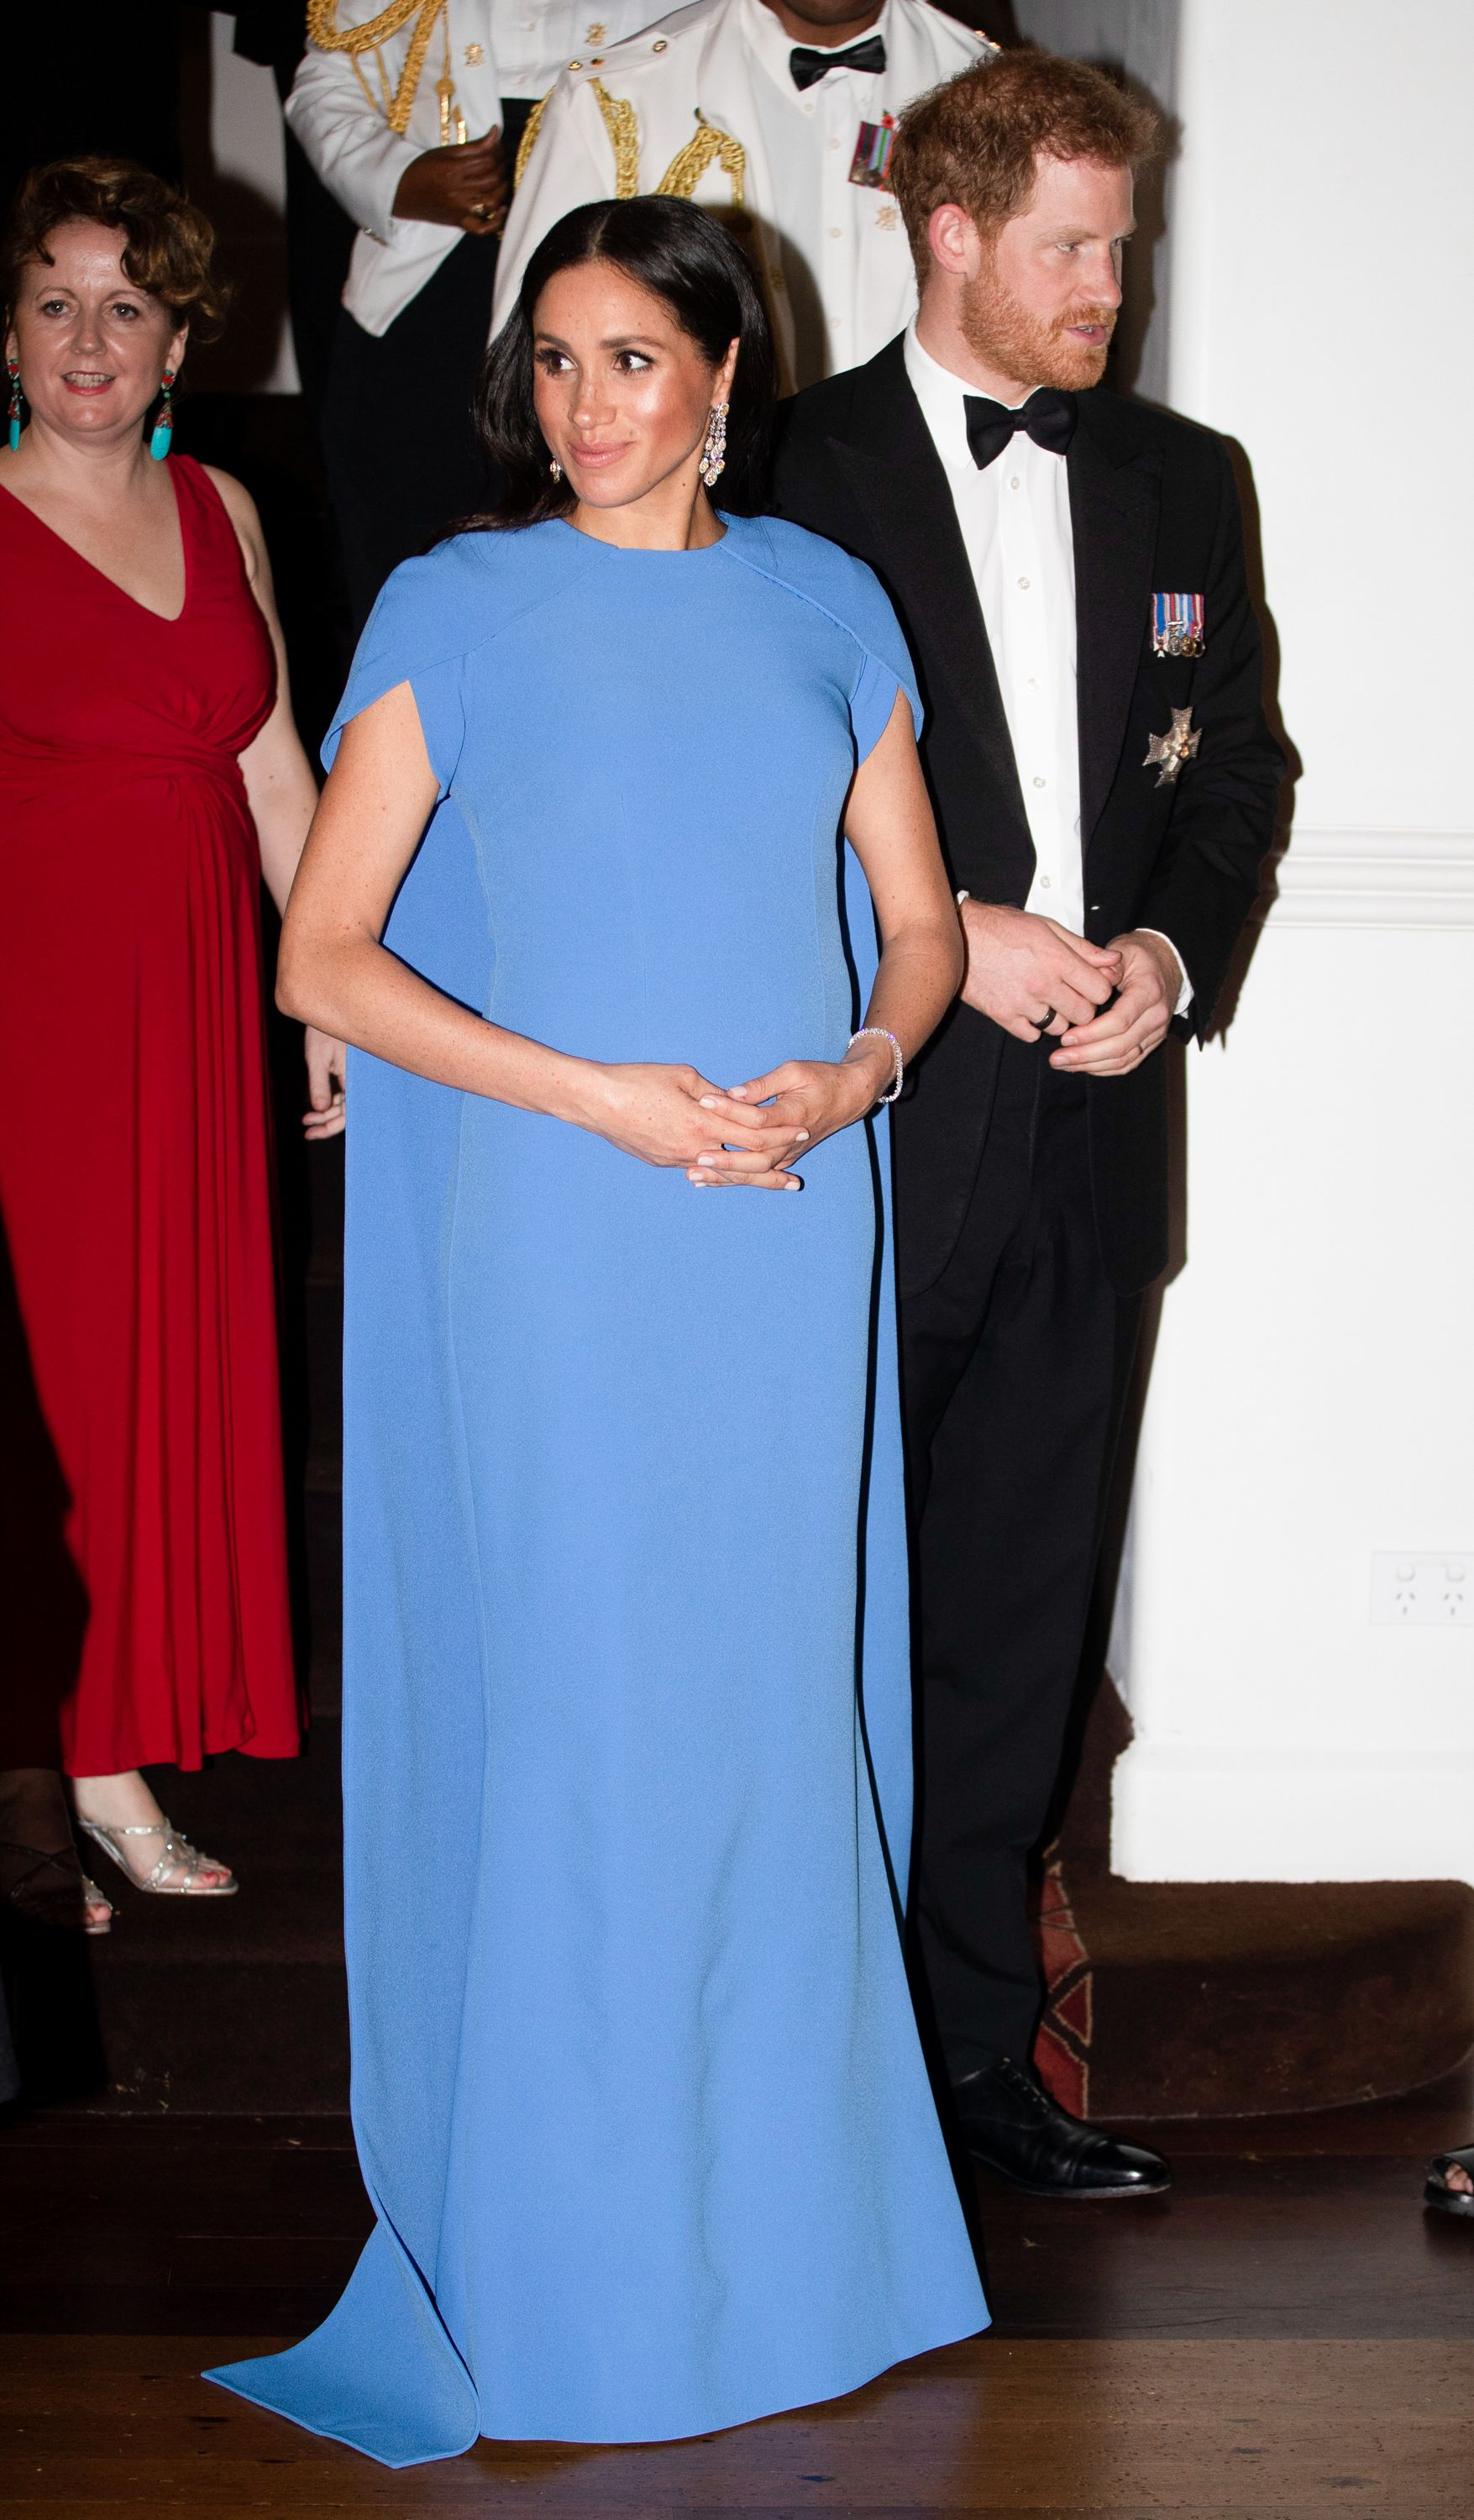 474078904544d Meghan Markle Maternity Style - Meghan Markle's Best Pregnancy Outfits and  Fashion